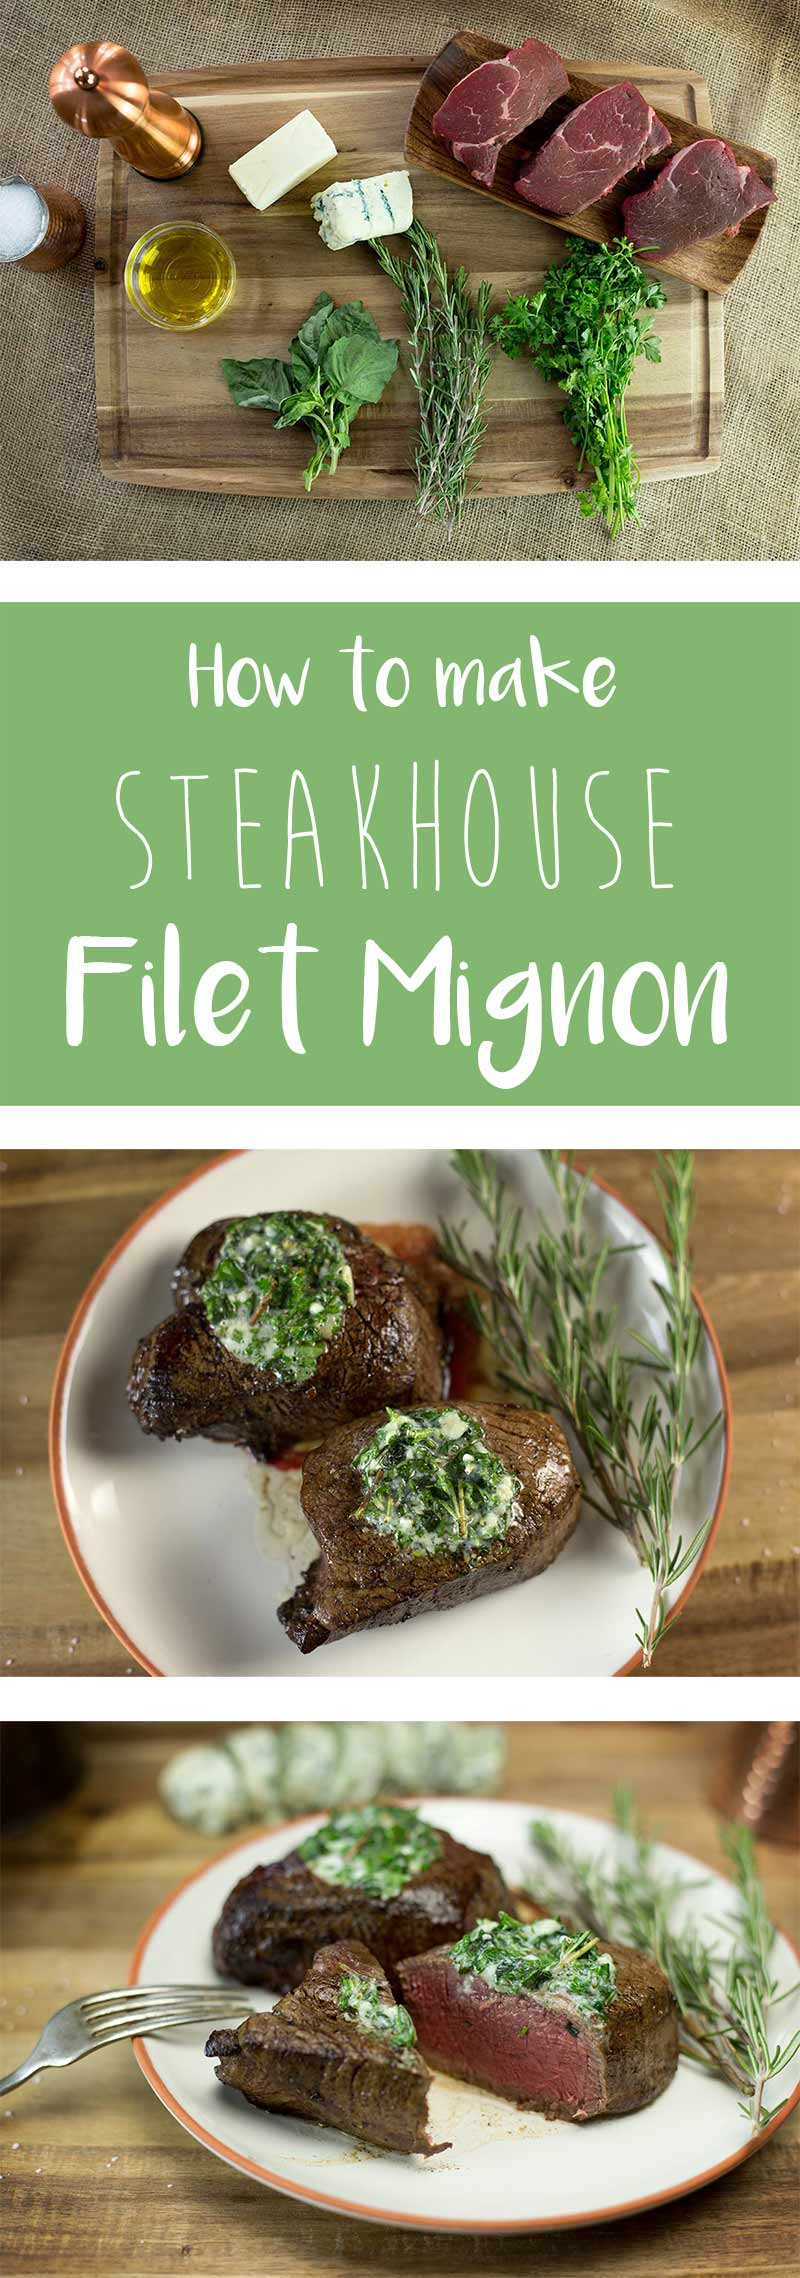 Steakhouse Filet Mignon-a juicy steak that is seared to perfection, served piping hot from the oven and topped with melting bleu cheese and herb butter.